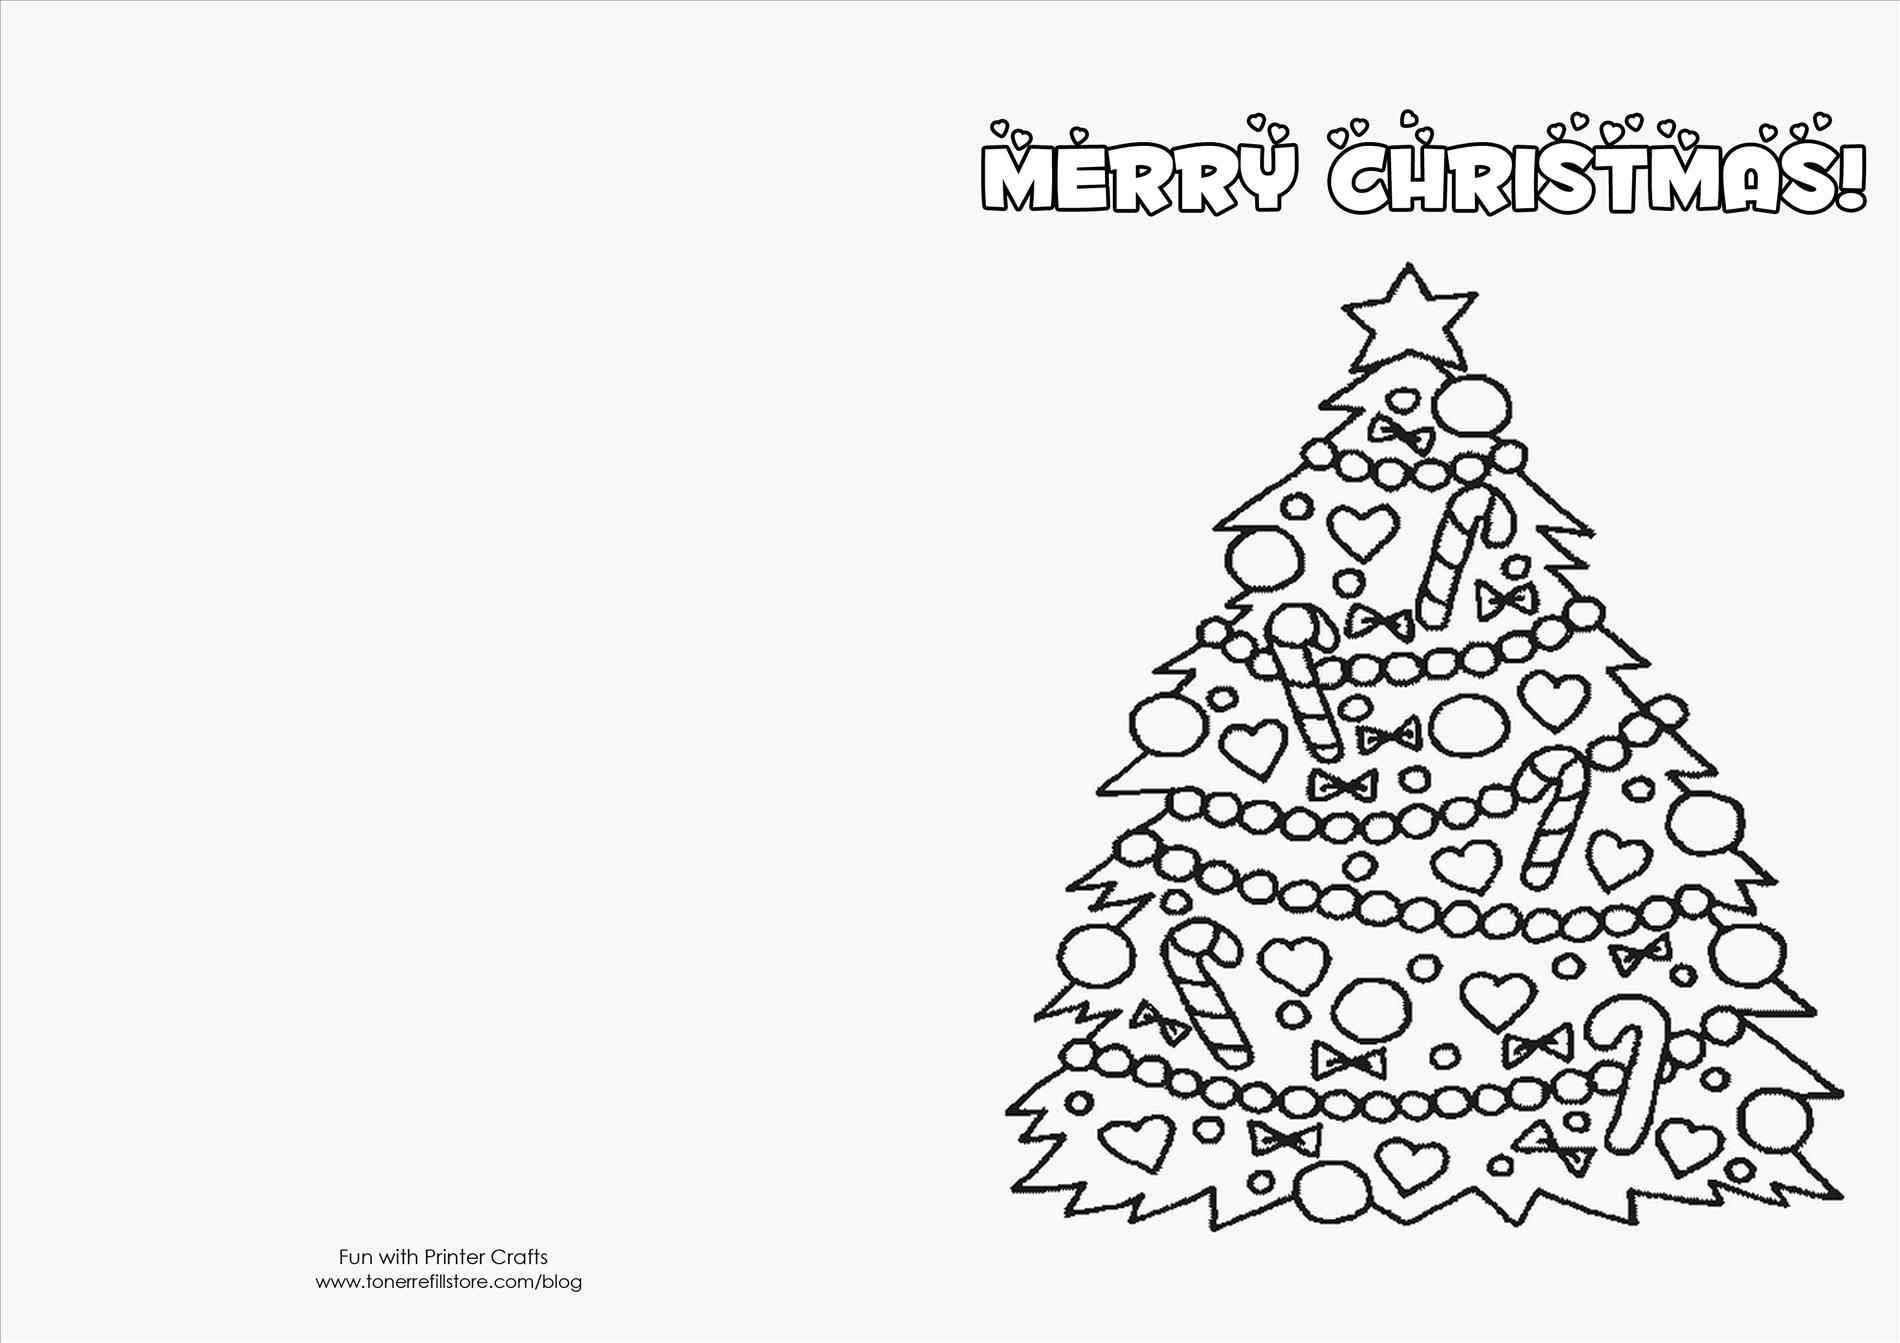 Printable Christmas Card Templates - Mahre.horizonconsulting.co Pertaining To Printable Holiday Card Templates